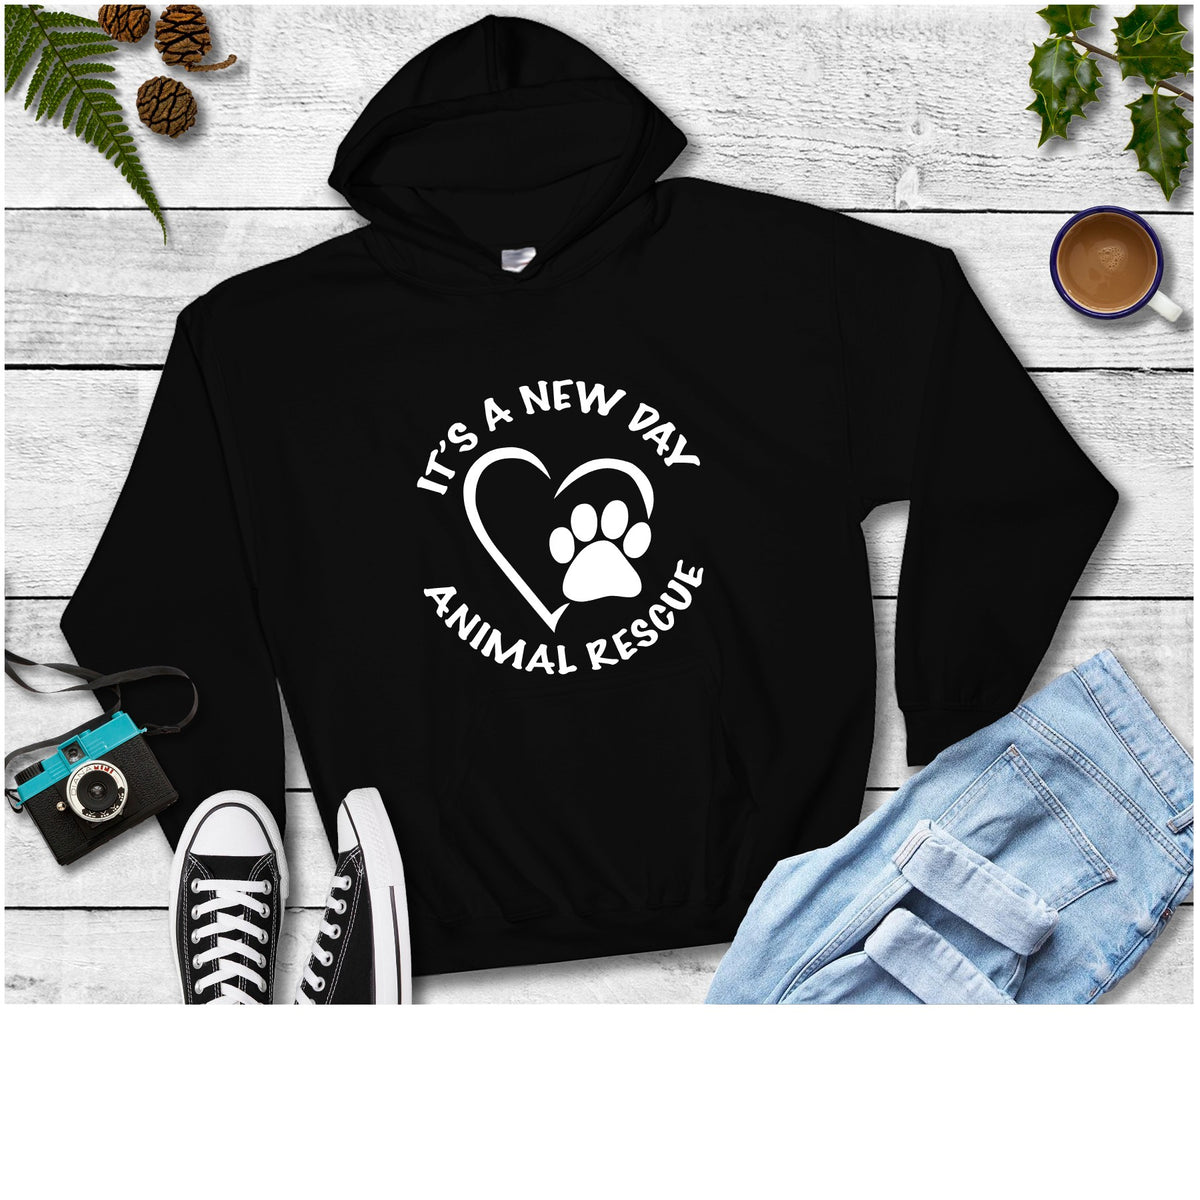 It's A New Day Unisex Pullover Hoodie - Ruff Life Rescue Wear